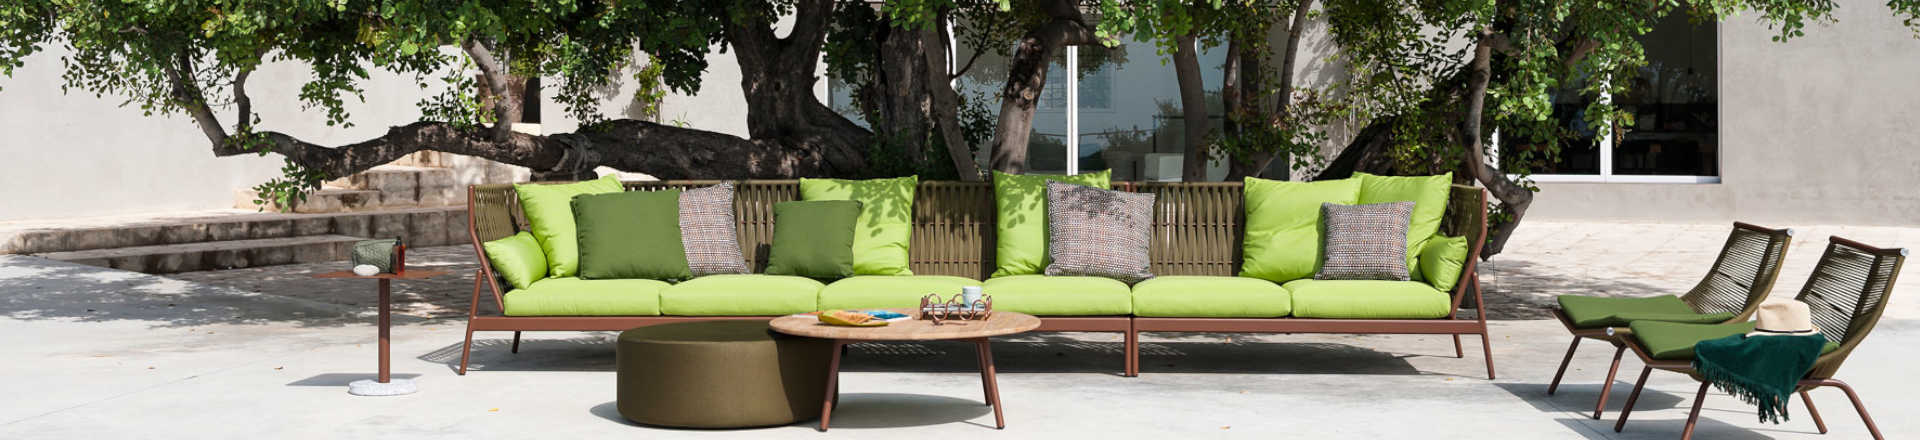 Roda | Arredamento Outdoor | Mondini Design Shop